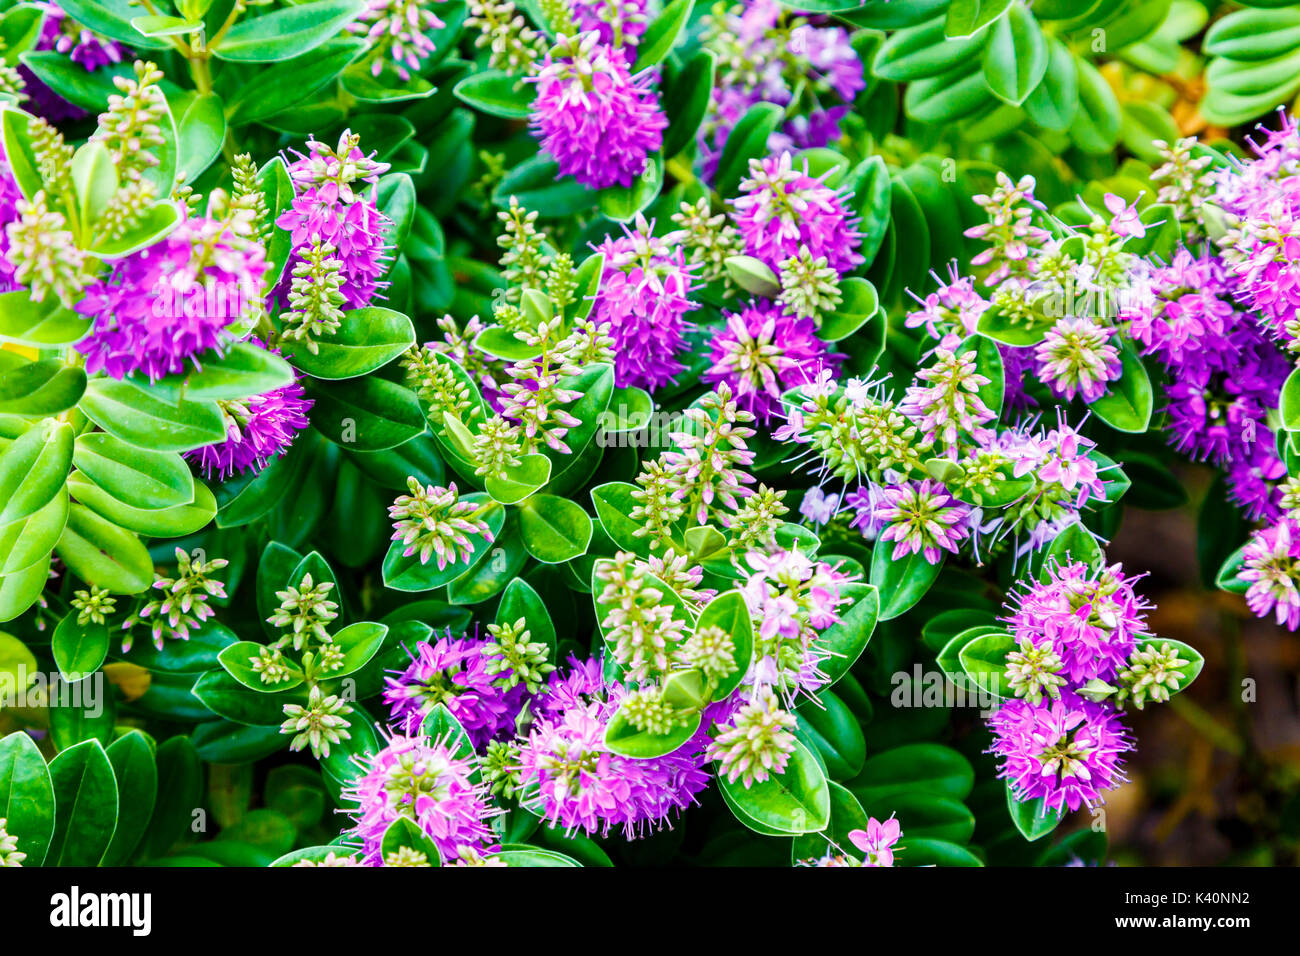 Gardening bush of New Zealand hebe, showy hebe or showy-speedwell (Hebe speciosa). - Stock Image